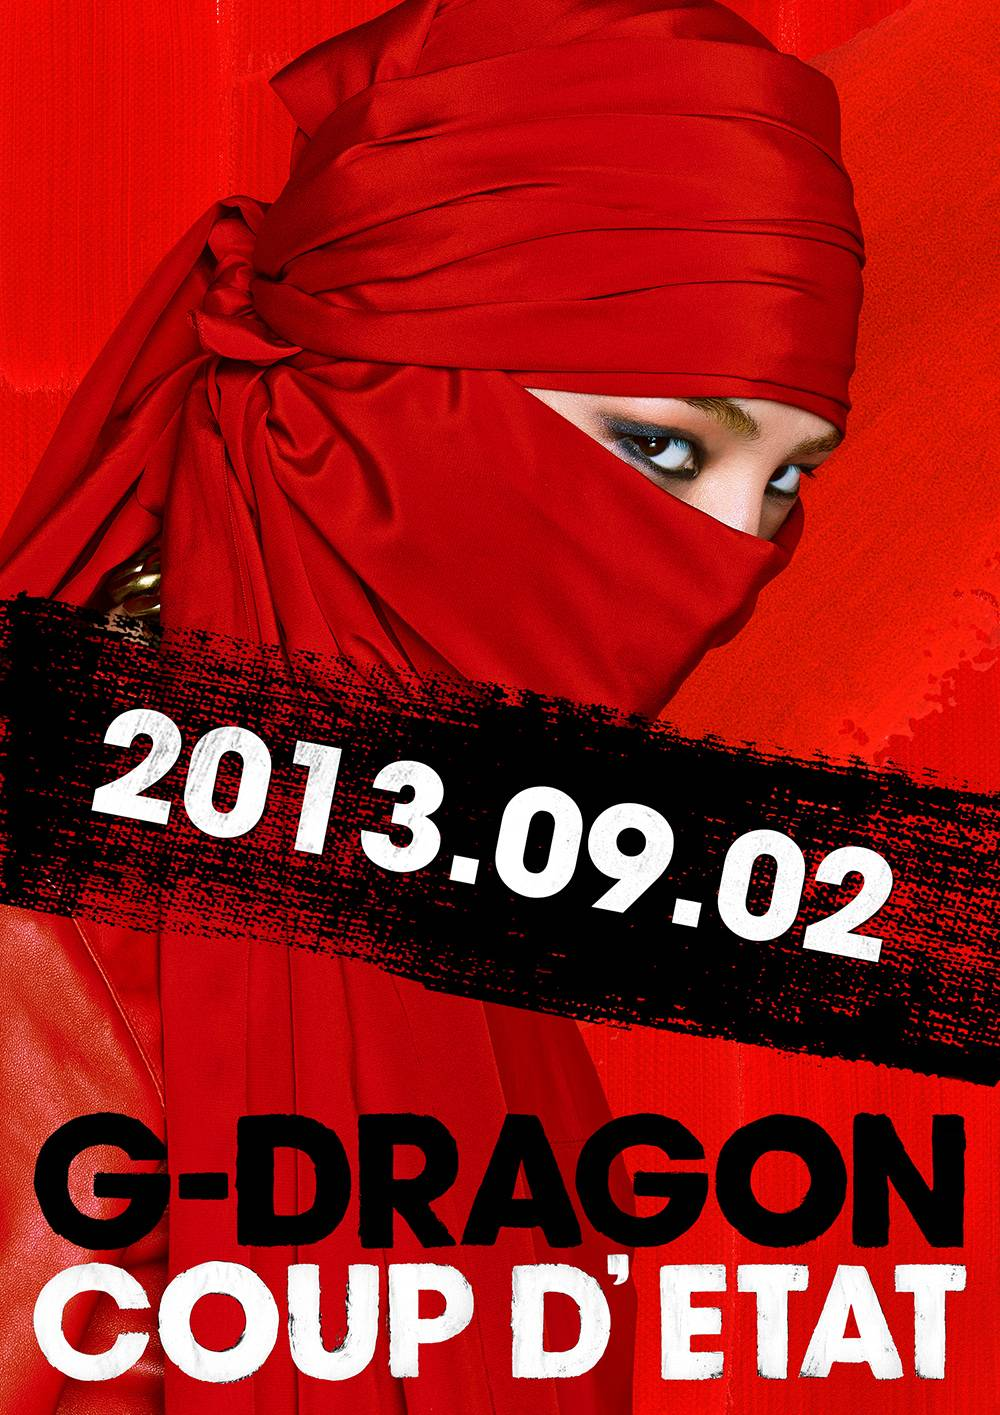 Dragon Wallpaper Coup Detat Gdragon  coup d`etat lyrics